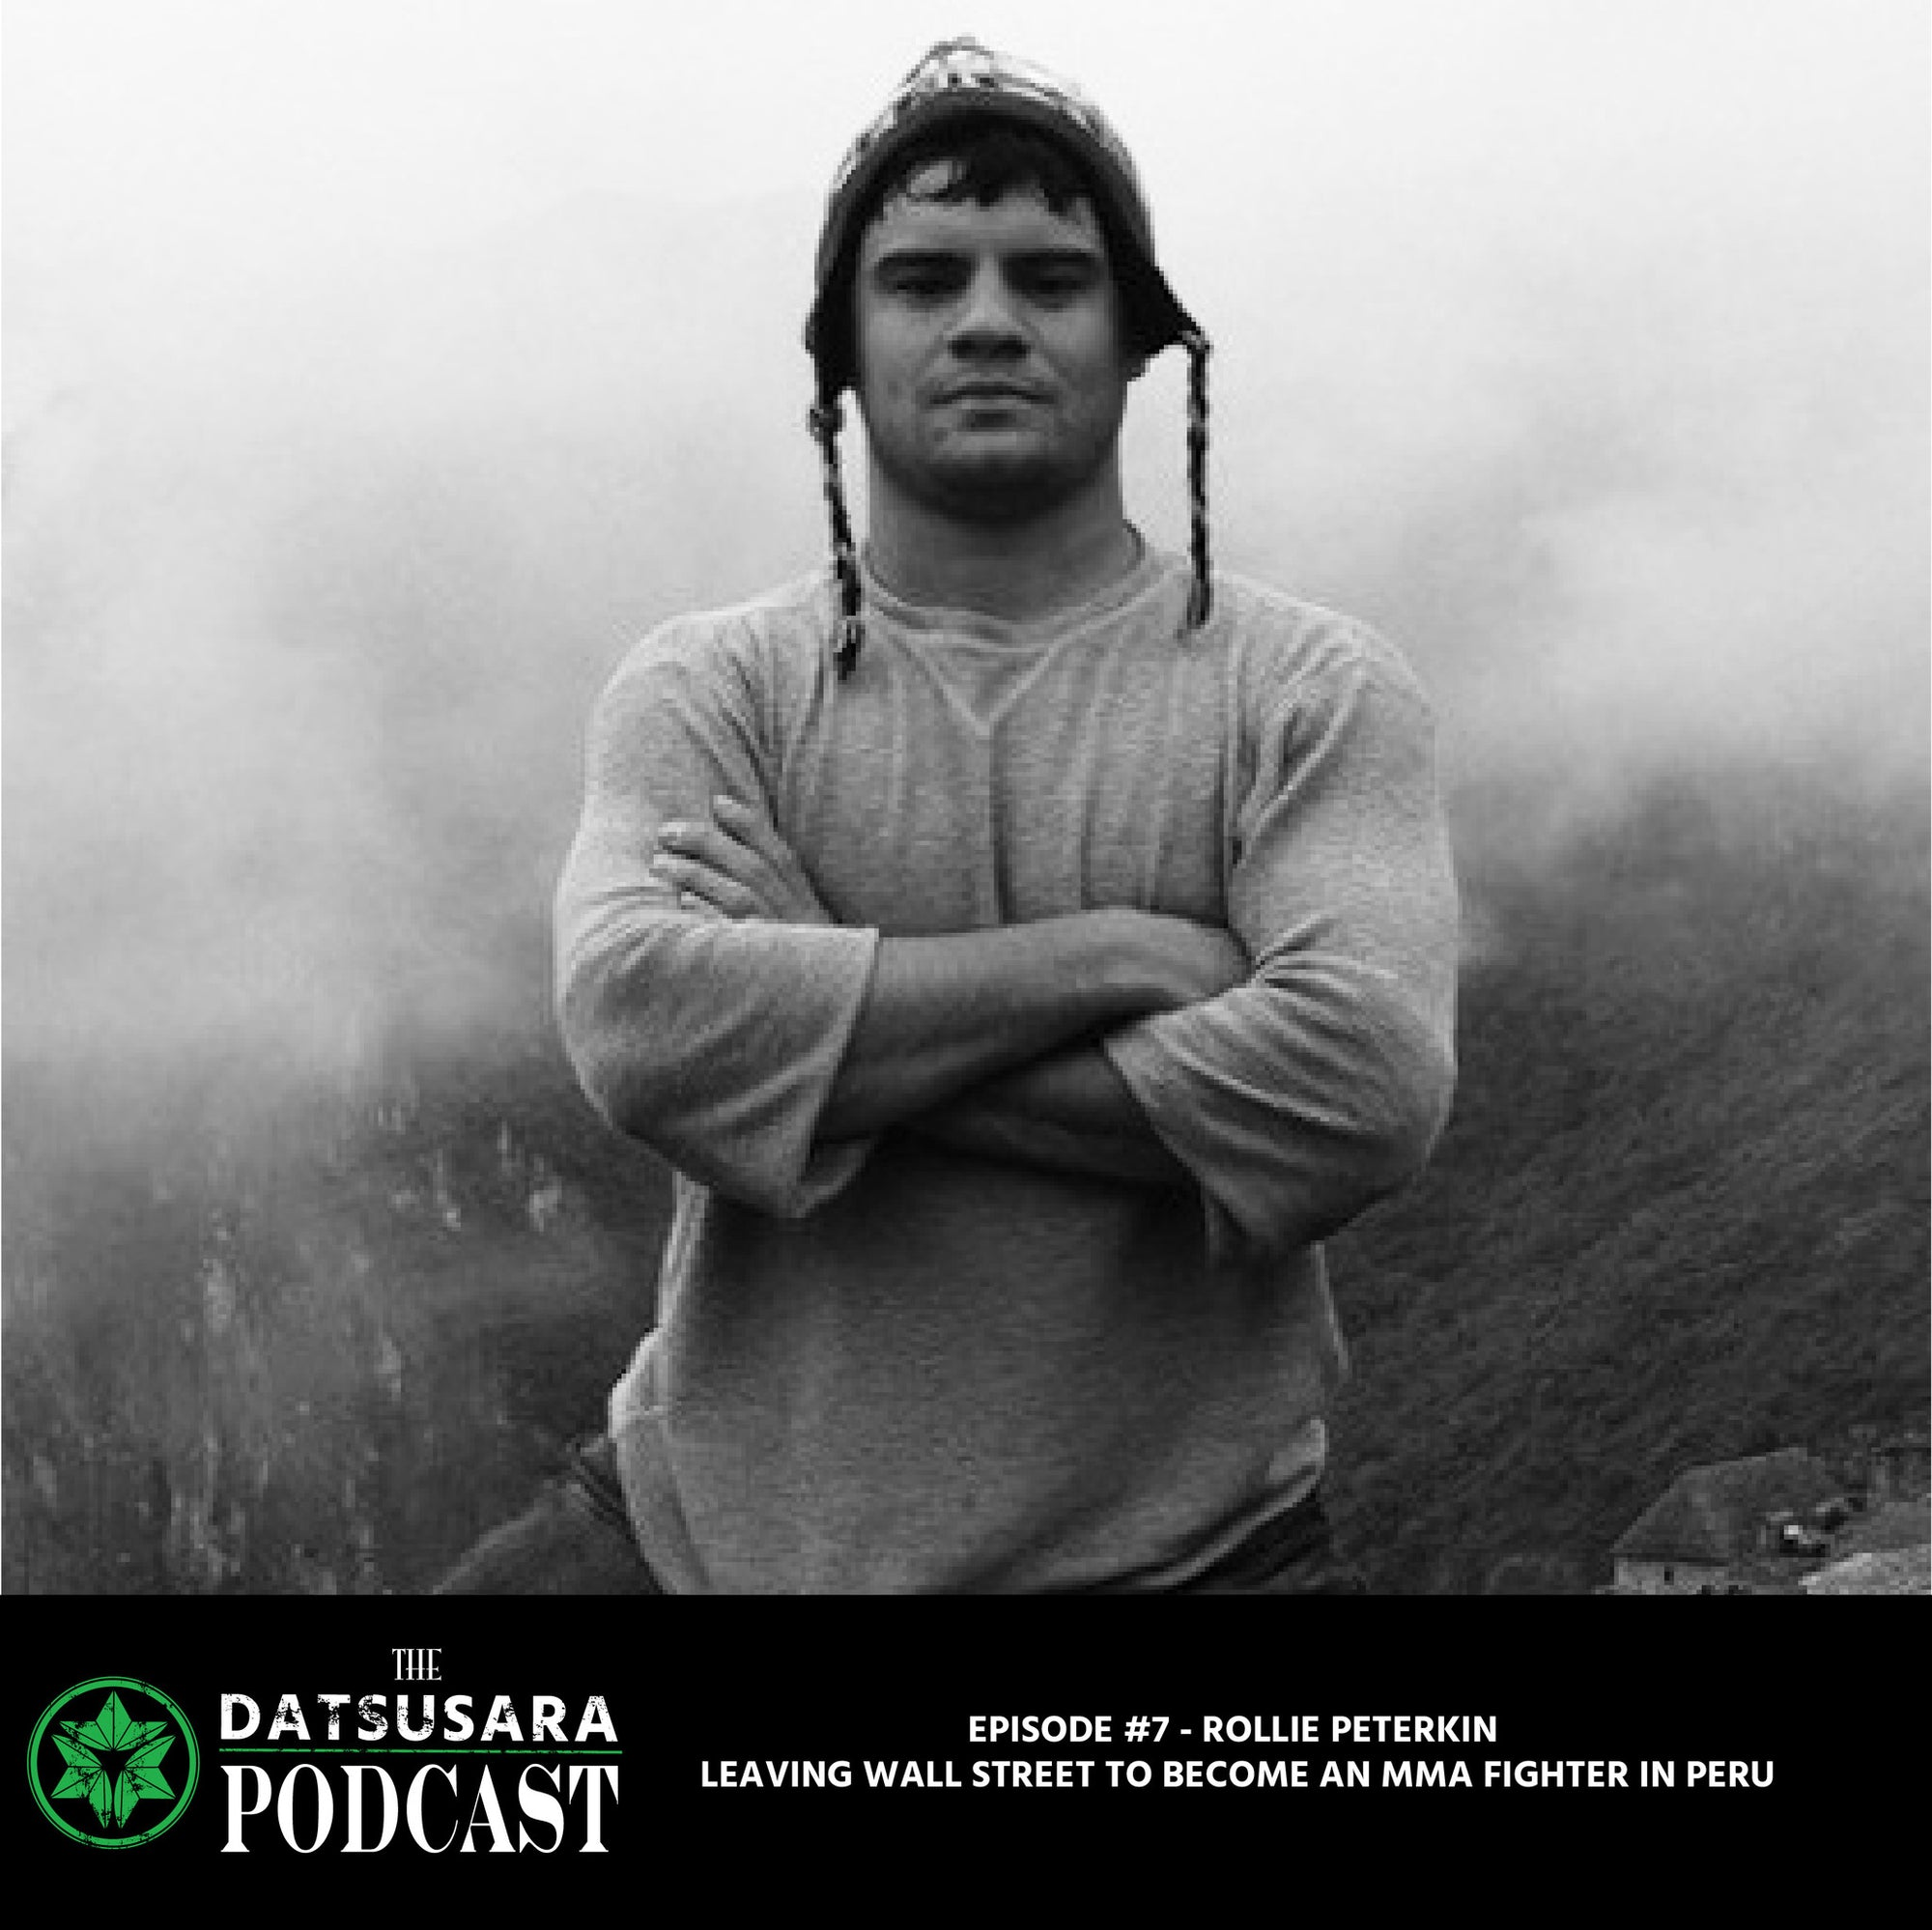 #7 - Rollie Peterkin - Leaving Wall Street to Become an MMA Fighter in Peru